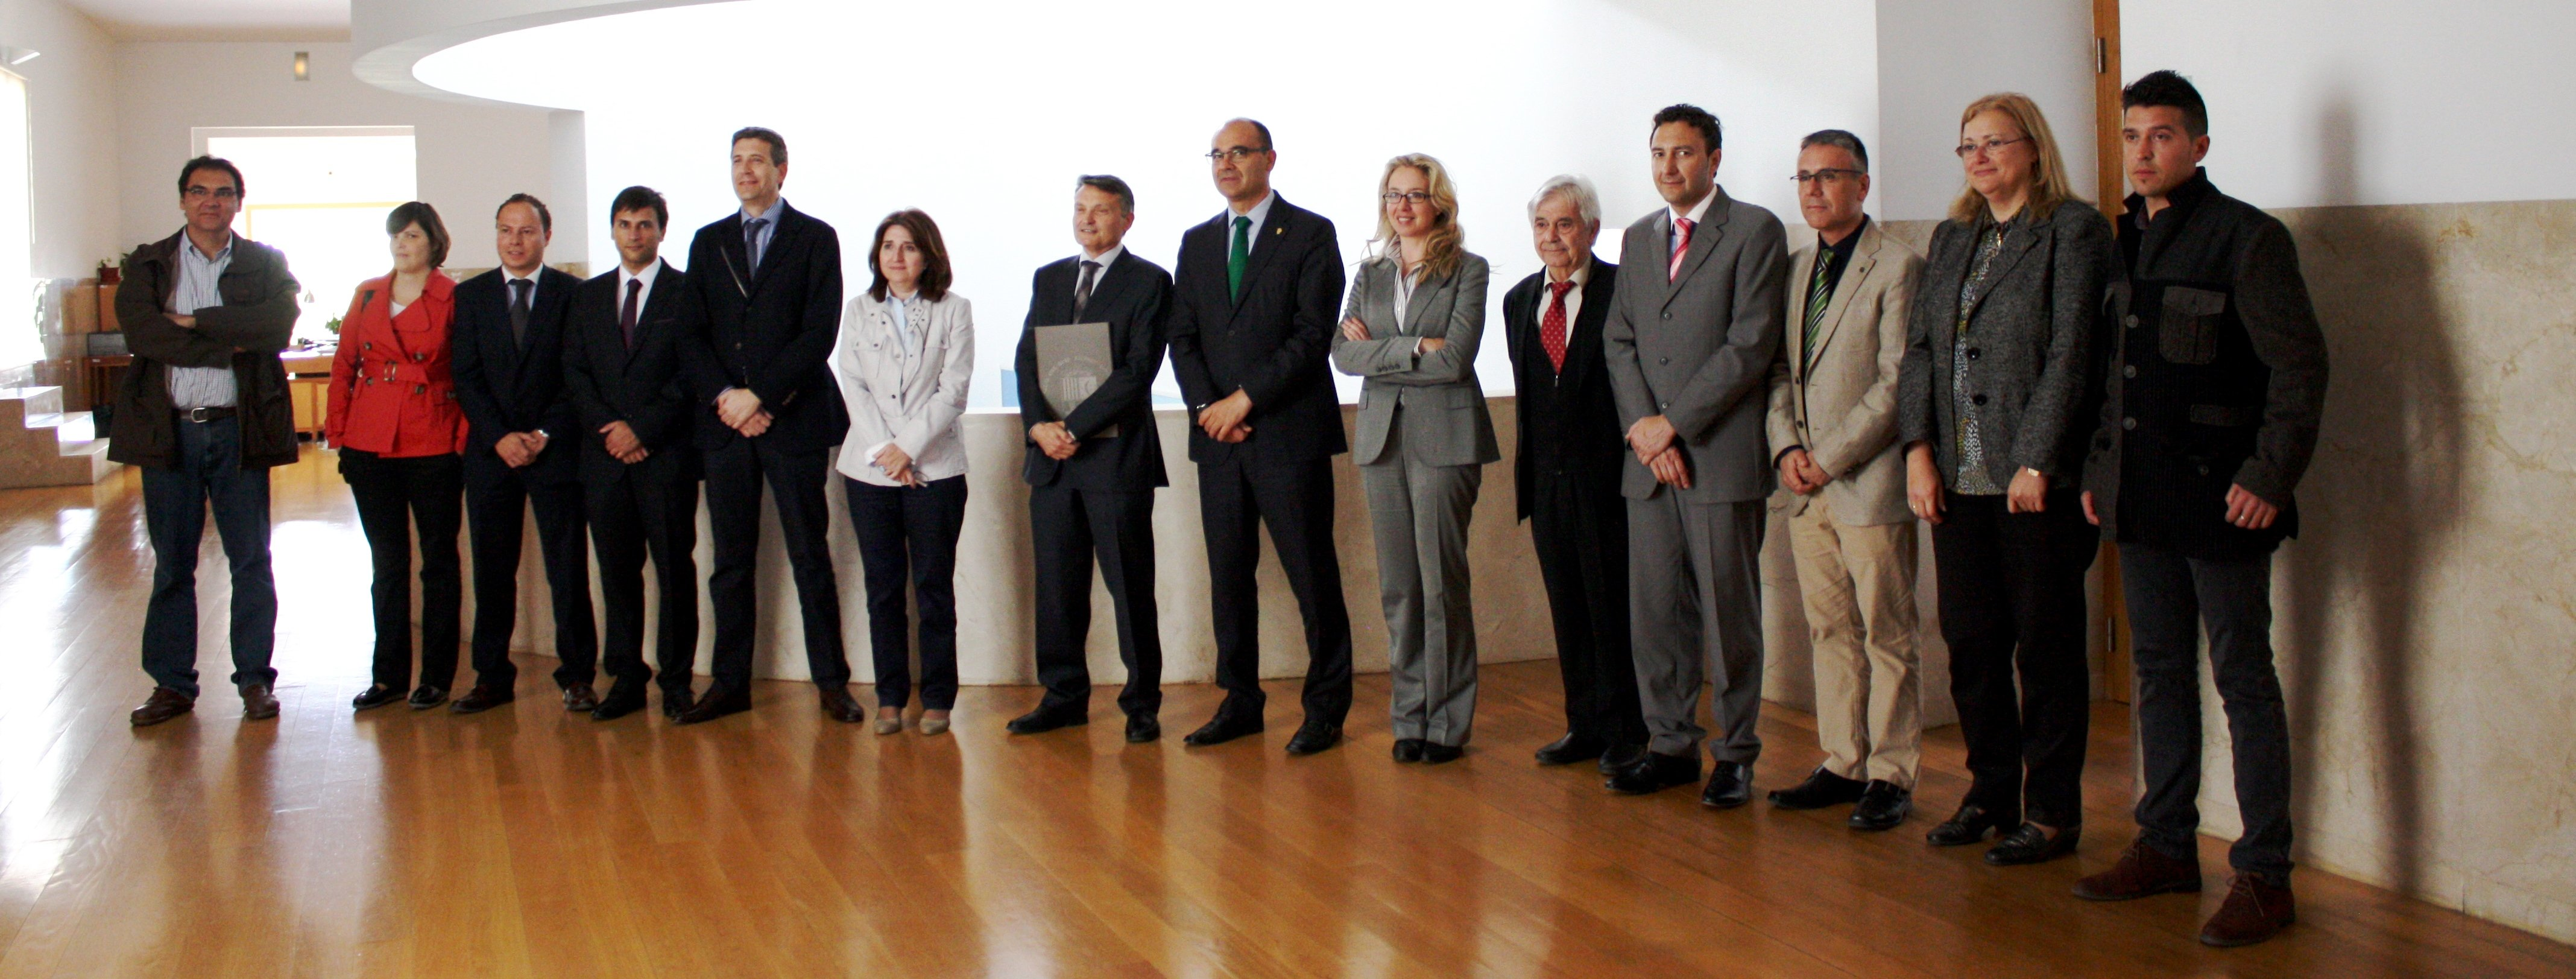 The University of Alicante along with Instituto Bernabeu has created the Department of Reproductive Medicine.